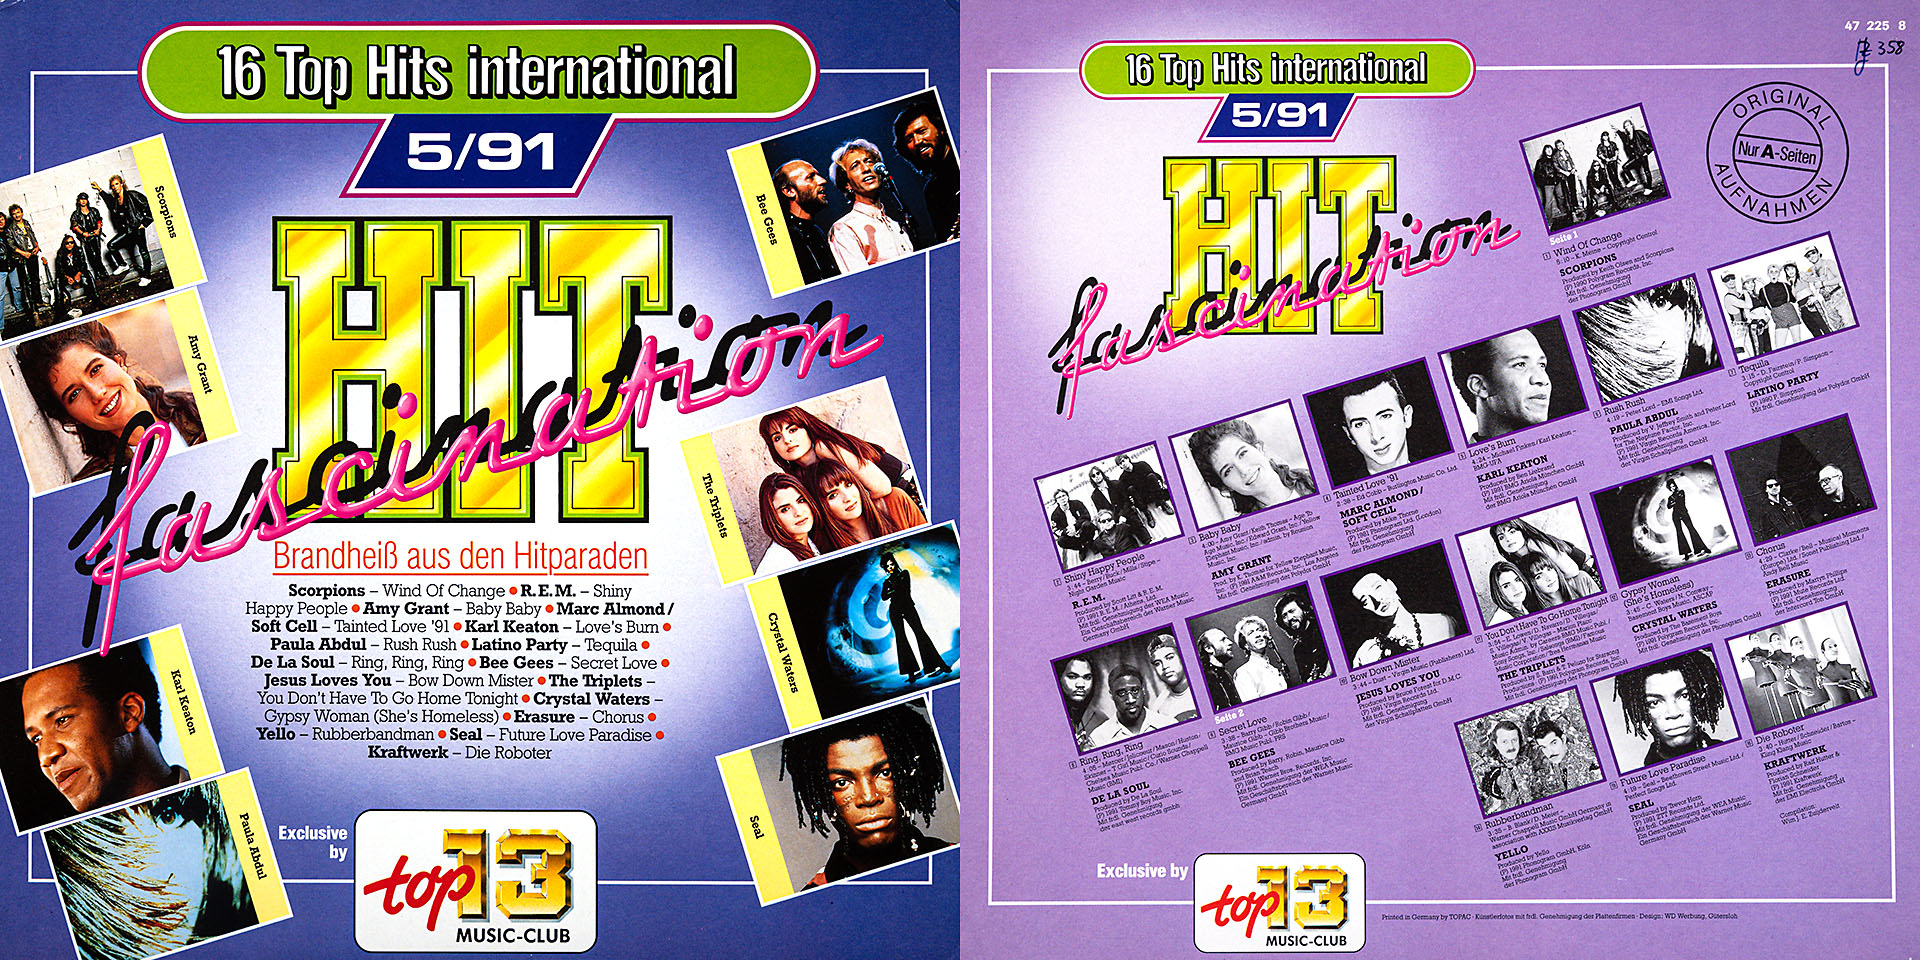 Hit fascination 5/91 - Scorpions / Marc Almond / Soft Cell / Bee Gees u. v. a. m.